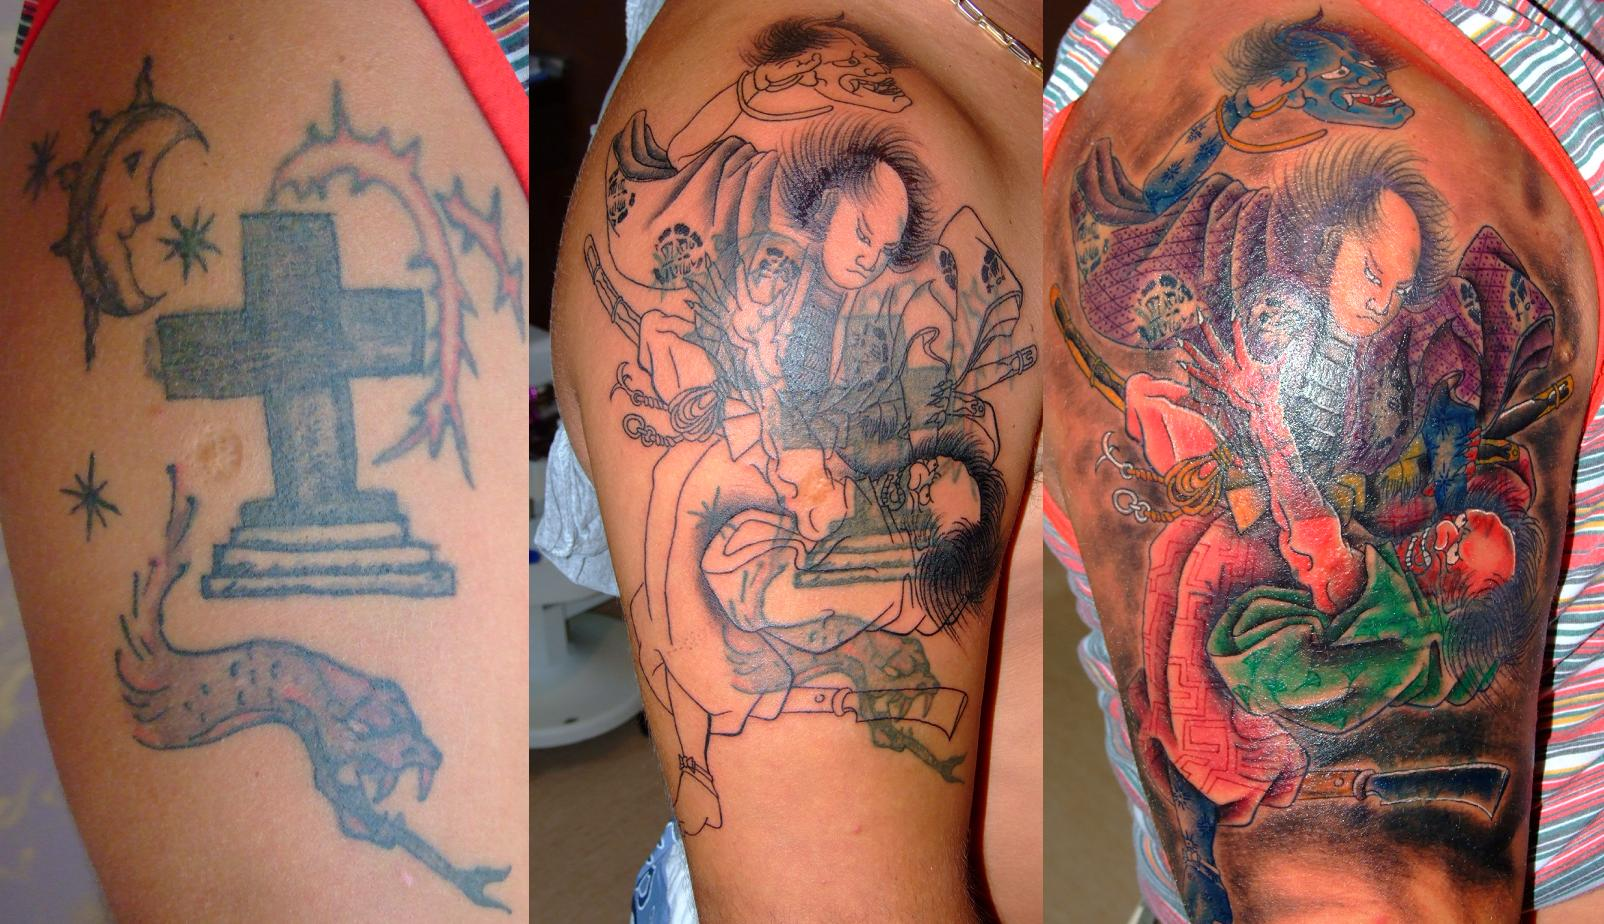 Tattoo cover up ideas samurai in fight cover up tattoo arm for Tattoo cover sleeve target